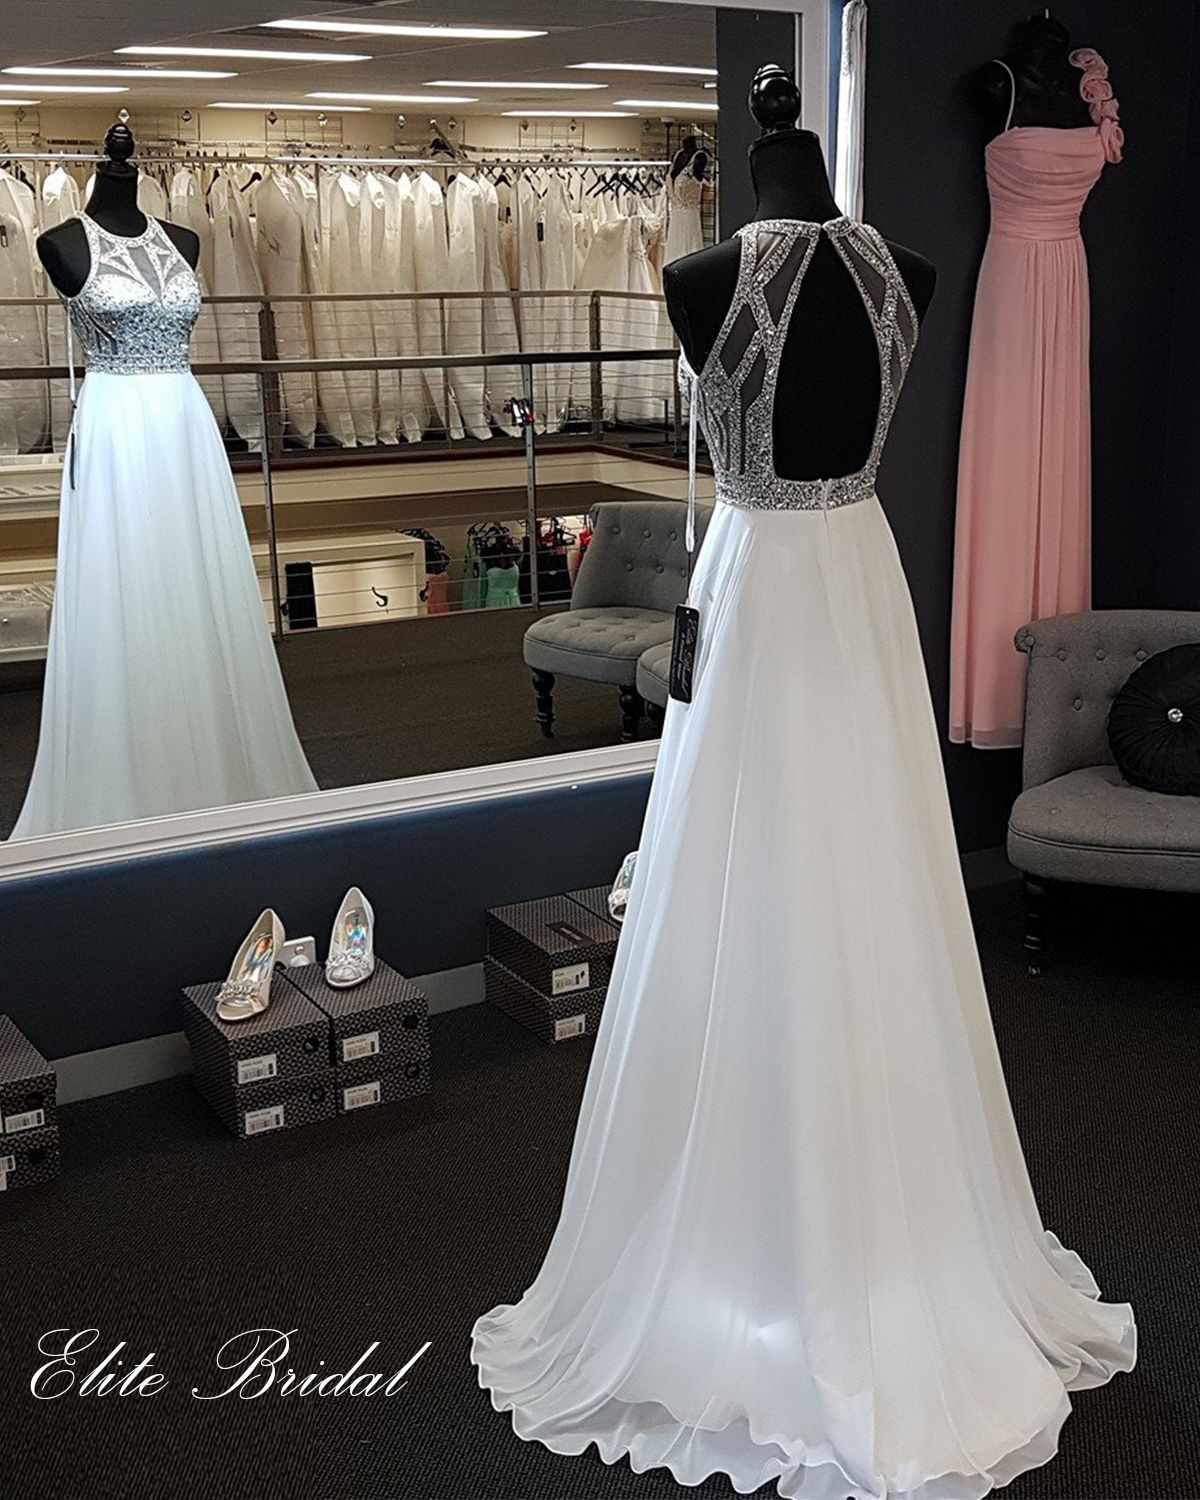 Elite wedding dresses  Check out our unique collection of stunning wedding dresses in